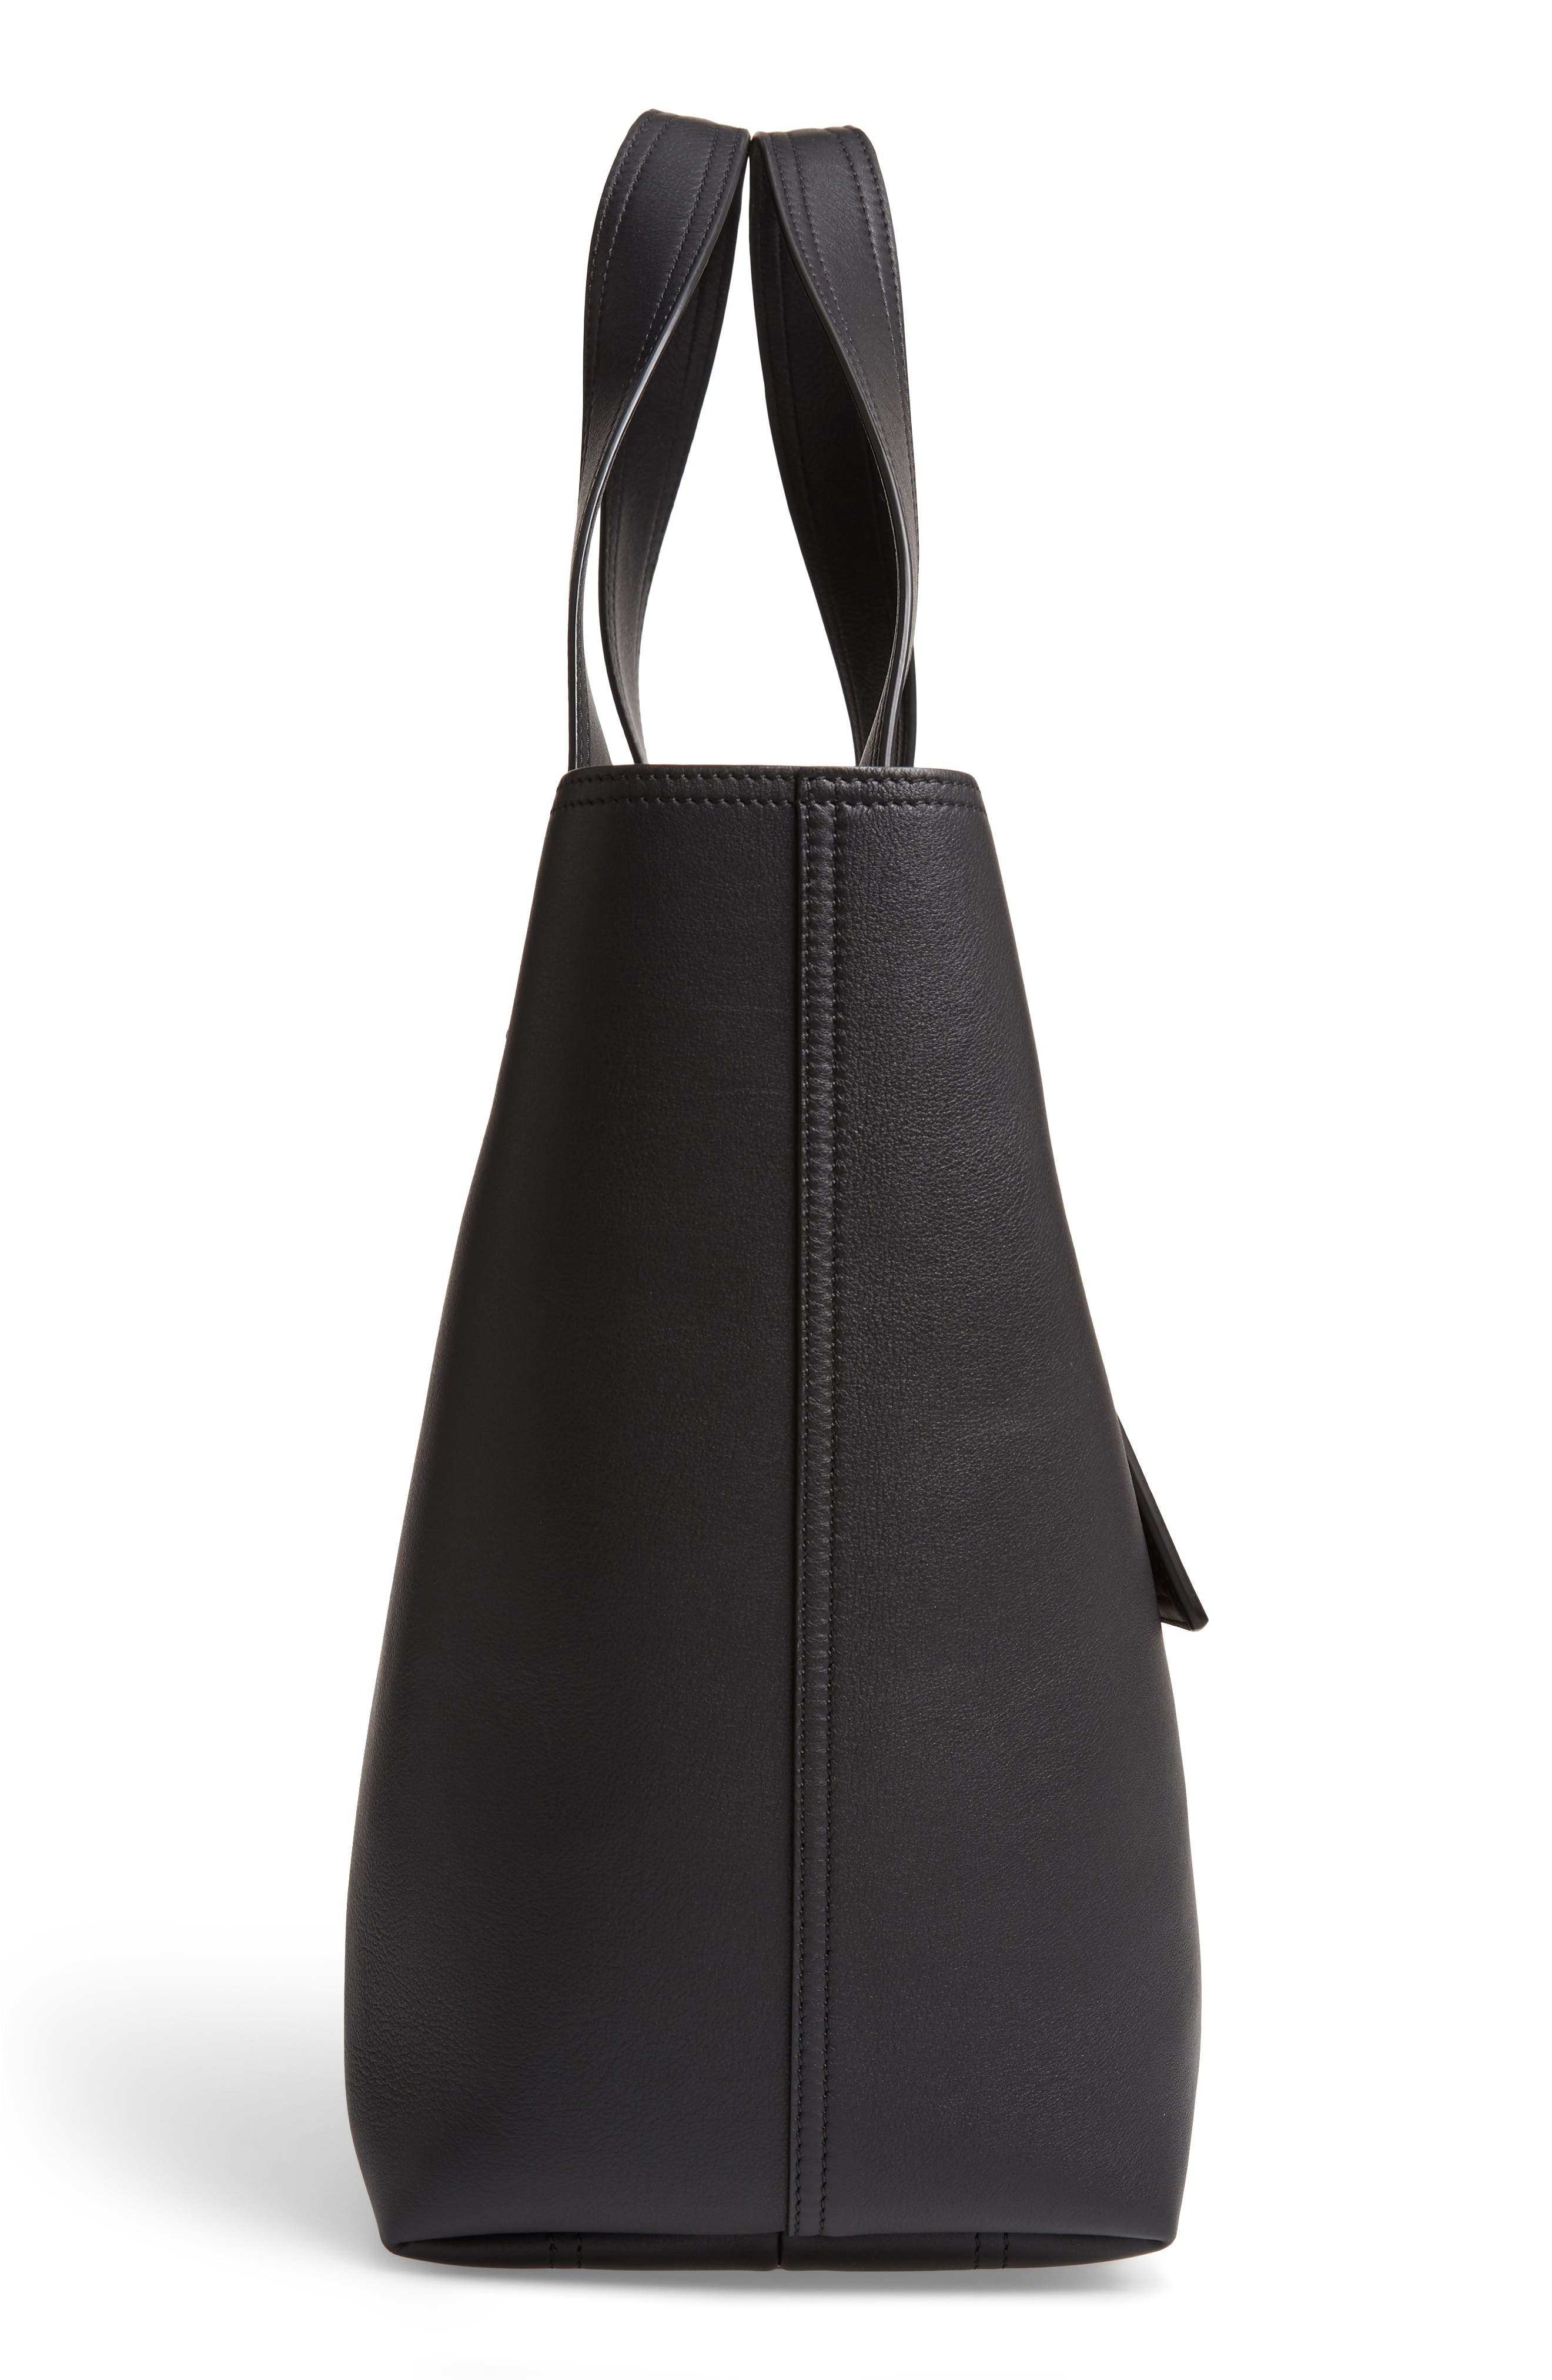 VICTORIA BECKHAM, Apron Leather Tote, Alternate thumbnail 5, color, 001